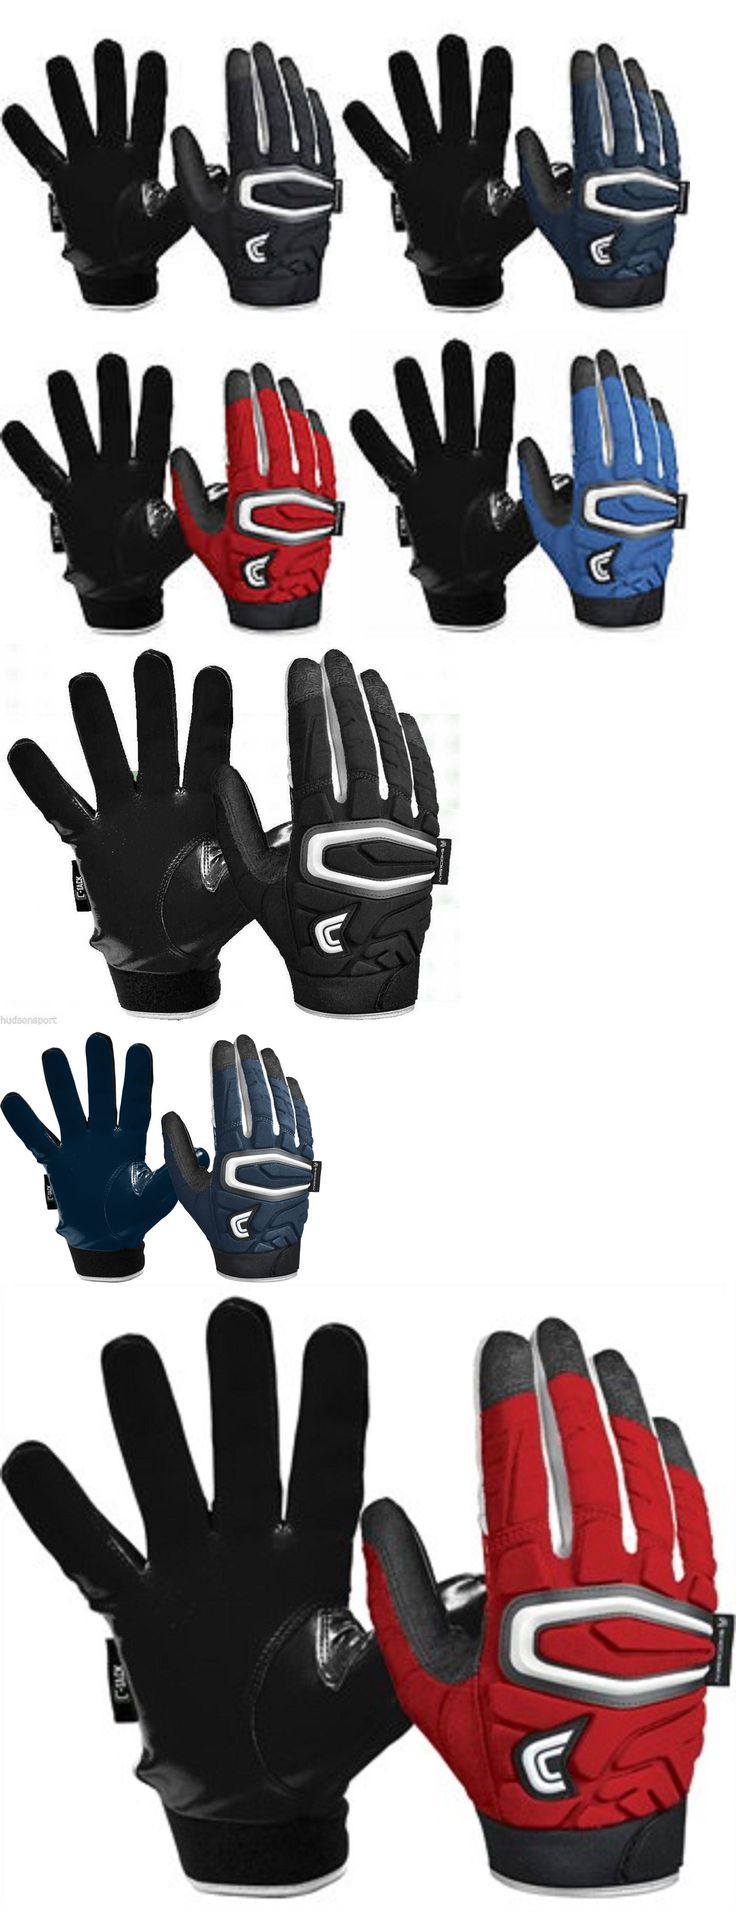 Gloves 159114: Cutters S60 Shockskin Gamer Adult Football Gloves -> BUY IT NOW ONLY: $45 on eBay!